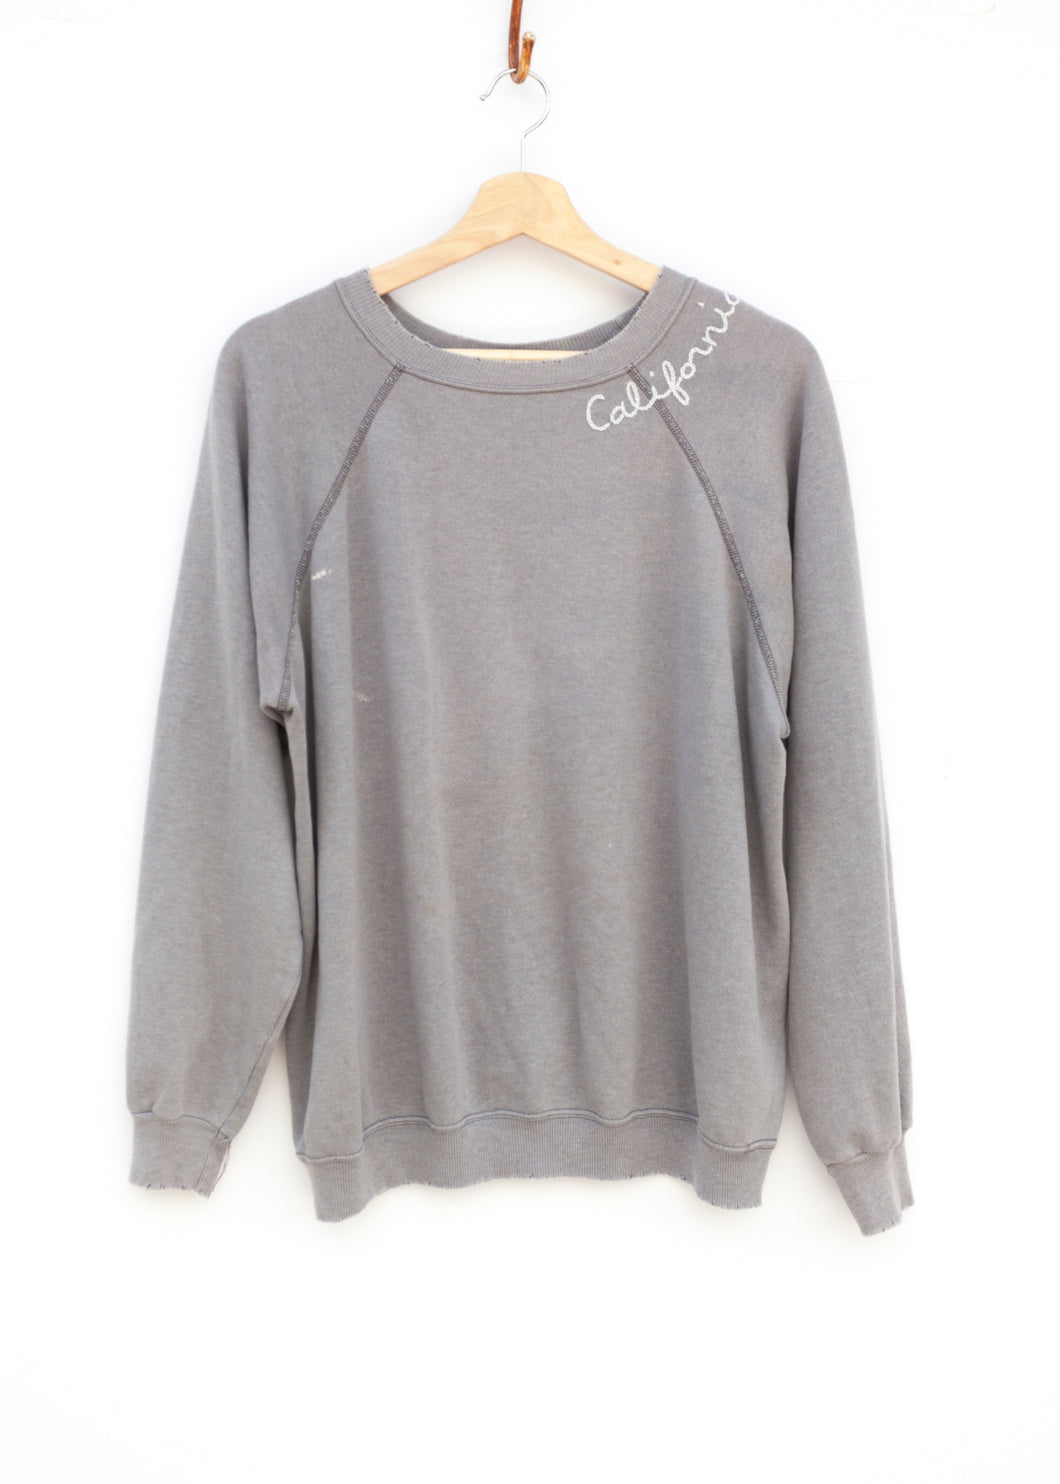 California Sweatshirt - Slate